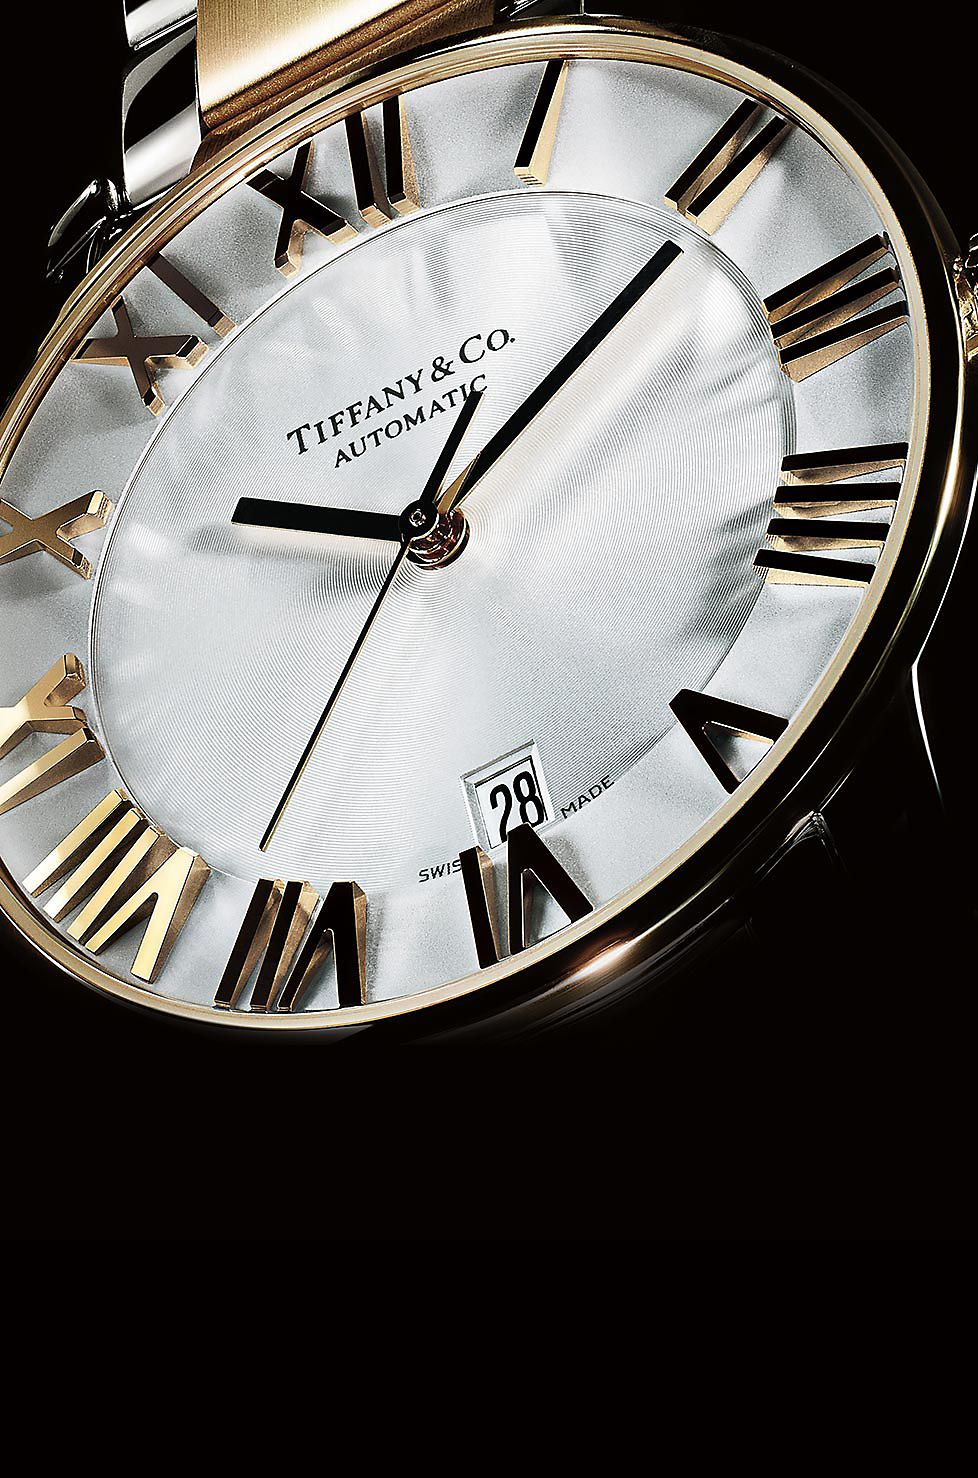 Tiffany Atlas Watches With Swiss Made Movements